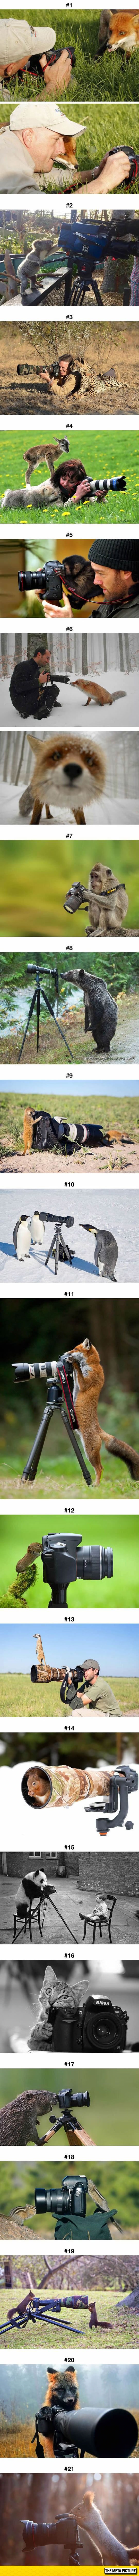 Animals That Want to Be Photographers